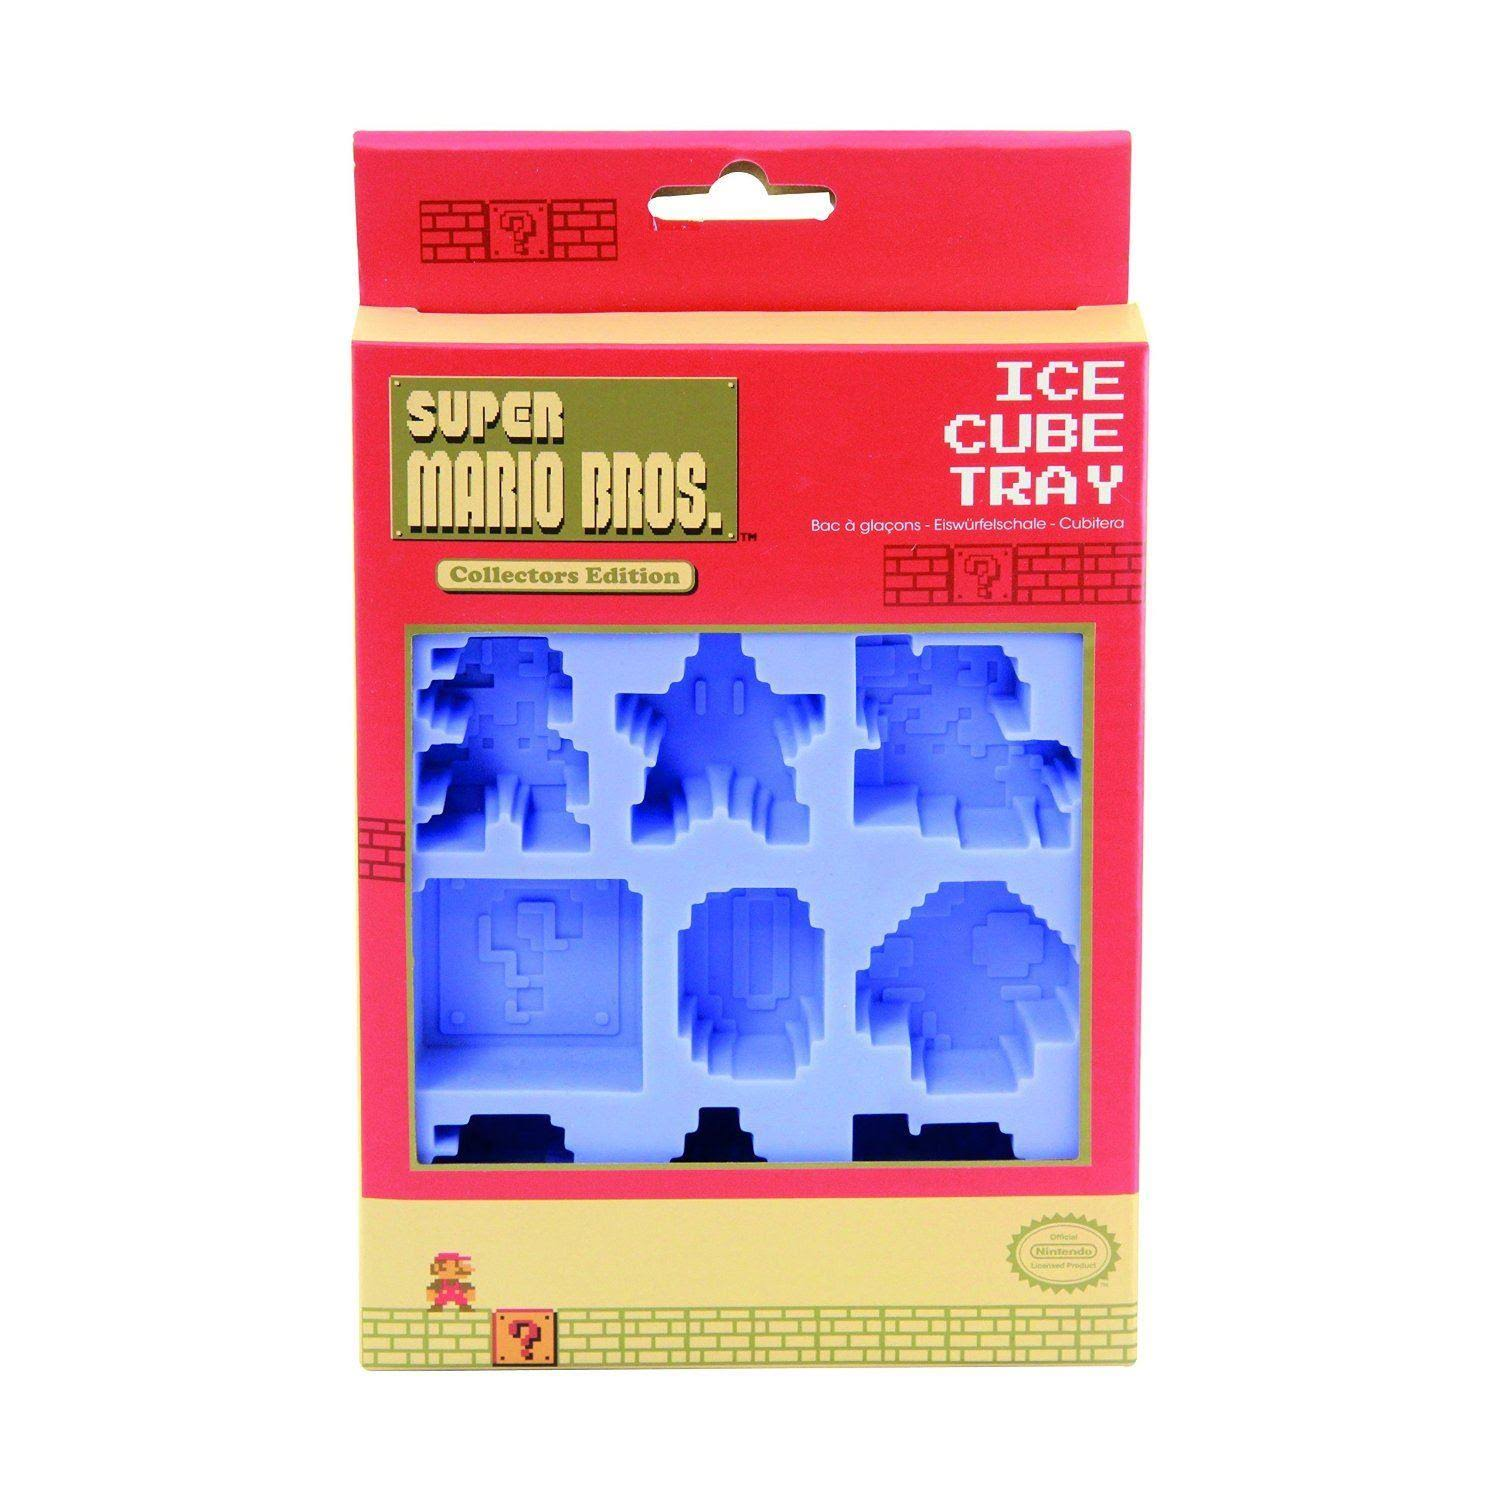 Super Mario Brothers Ice Cube Tray